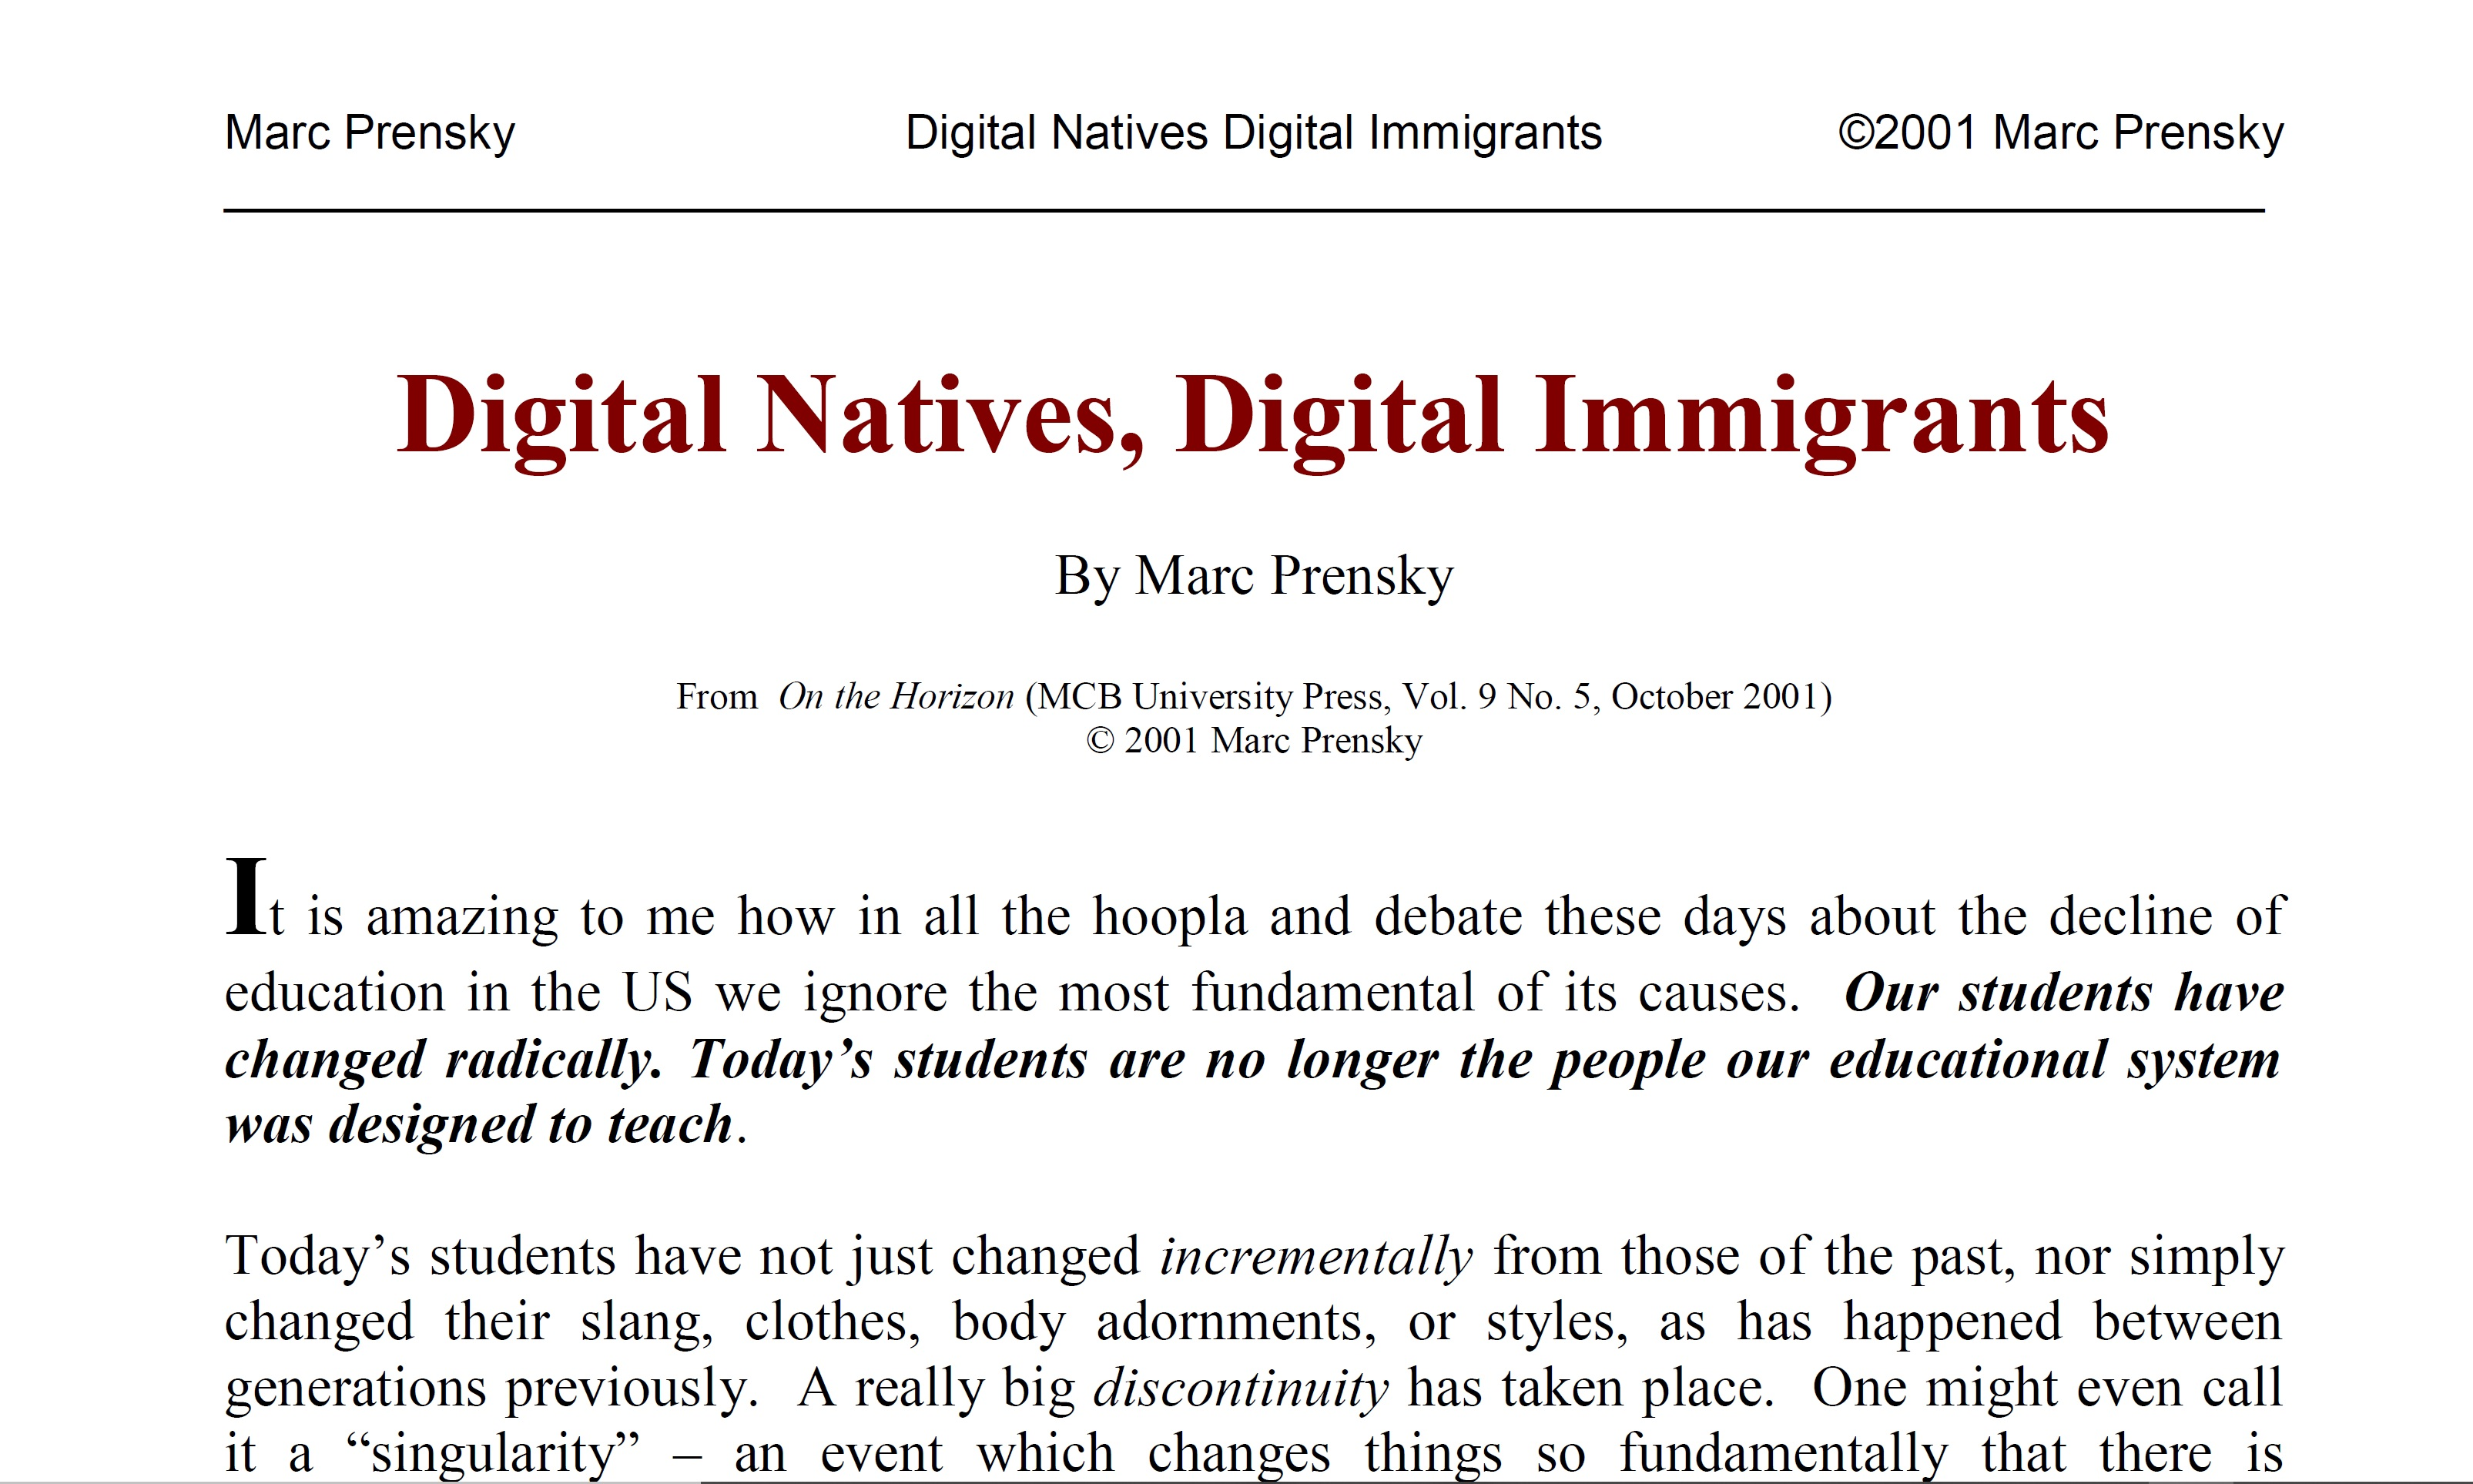 Digital Natives, Digital Immigrants